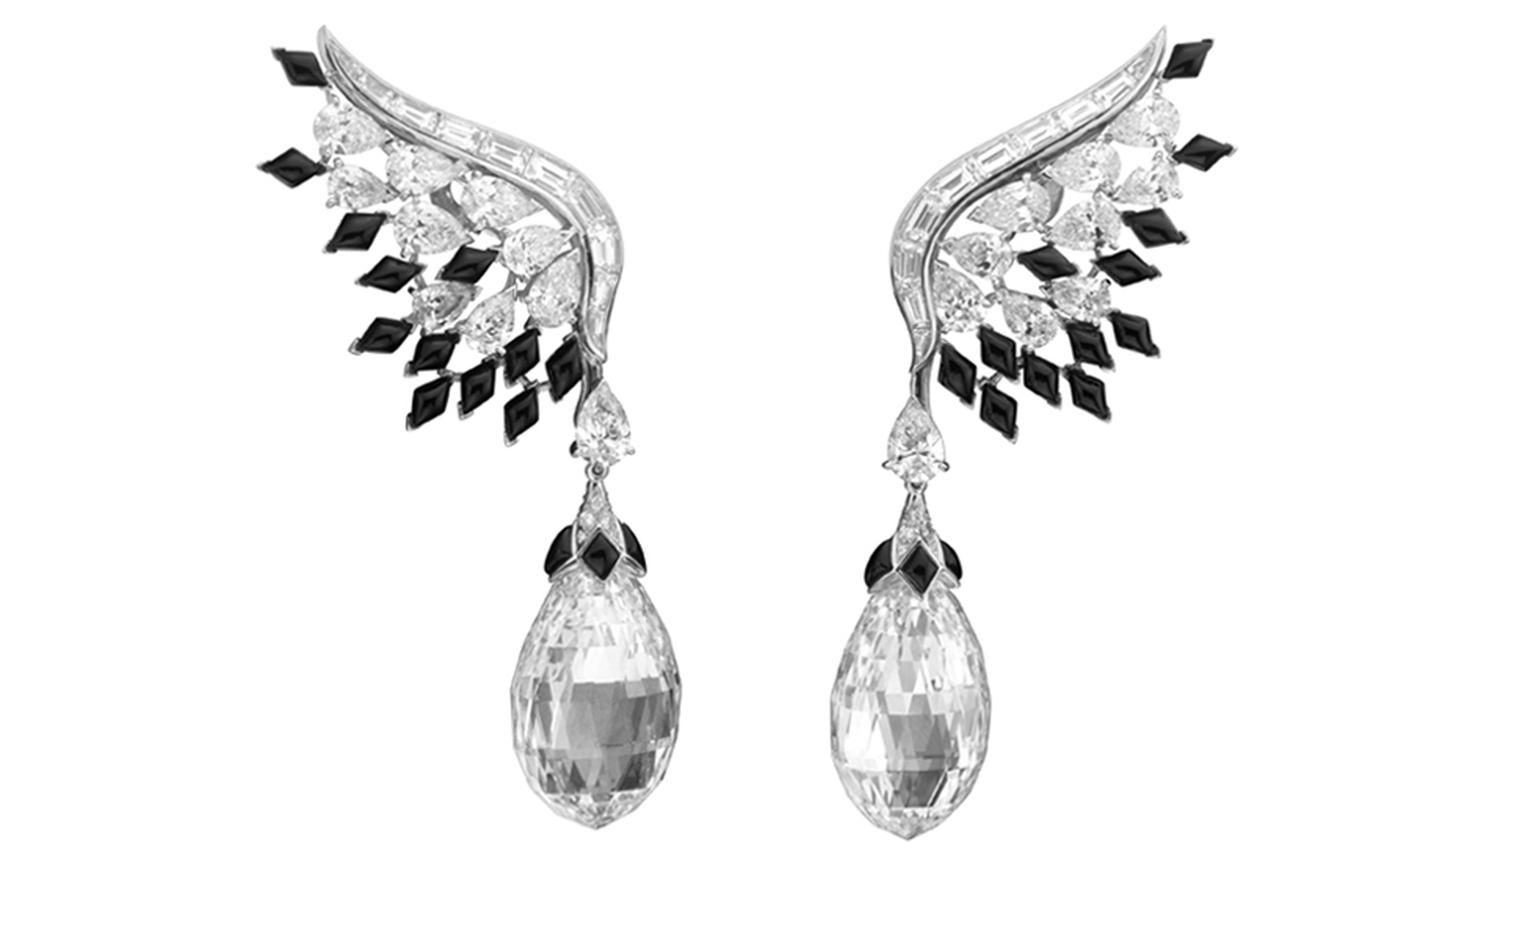 Van Cleef & Arpels, Bals de Légende, Le Bal Black and White, Black and White coloured earrings.